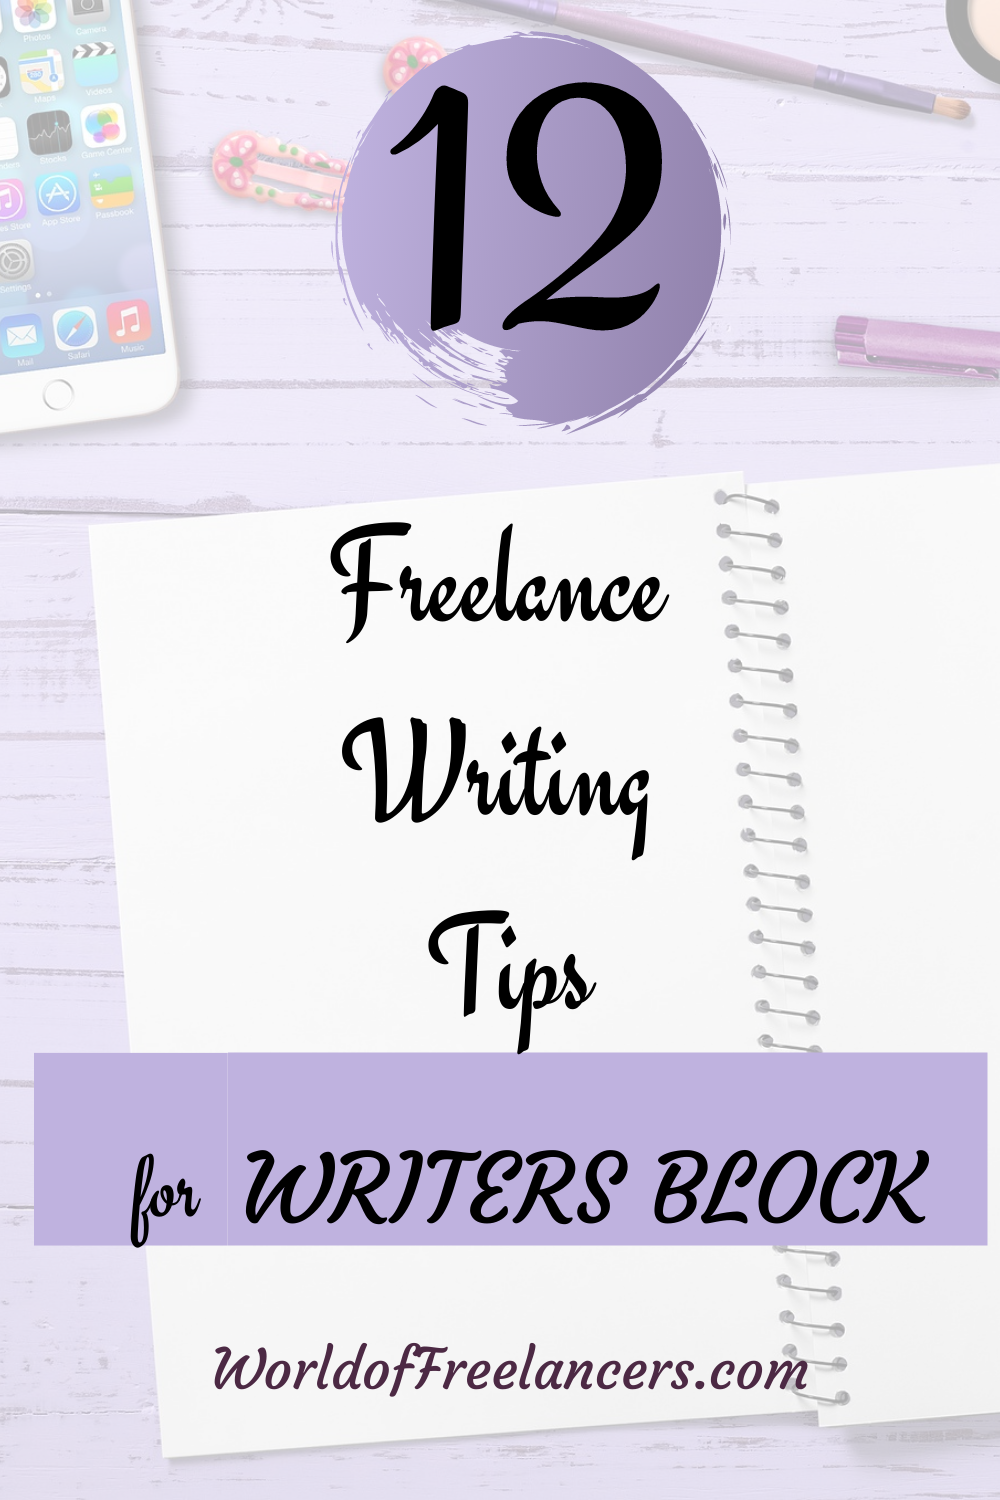 12 freelance writing tips for writer's block text overlay on image of open writer's notebook with blank pages